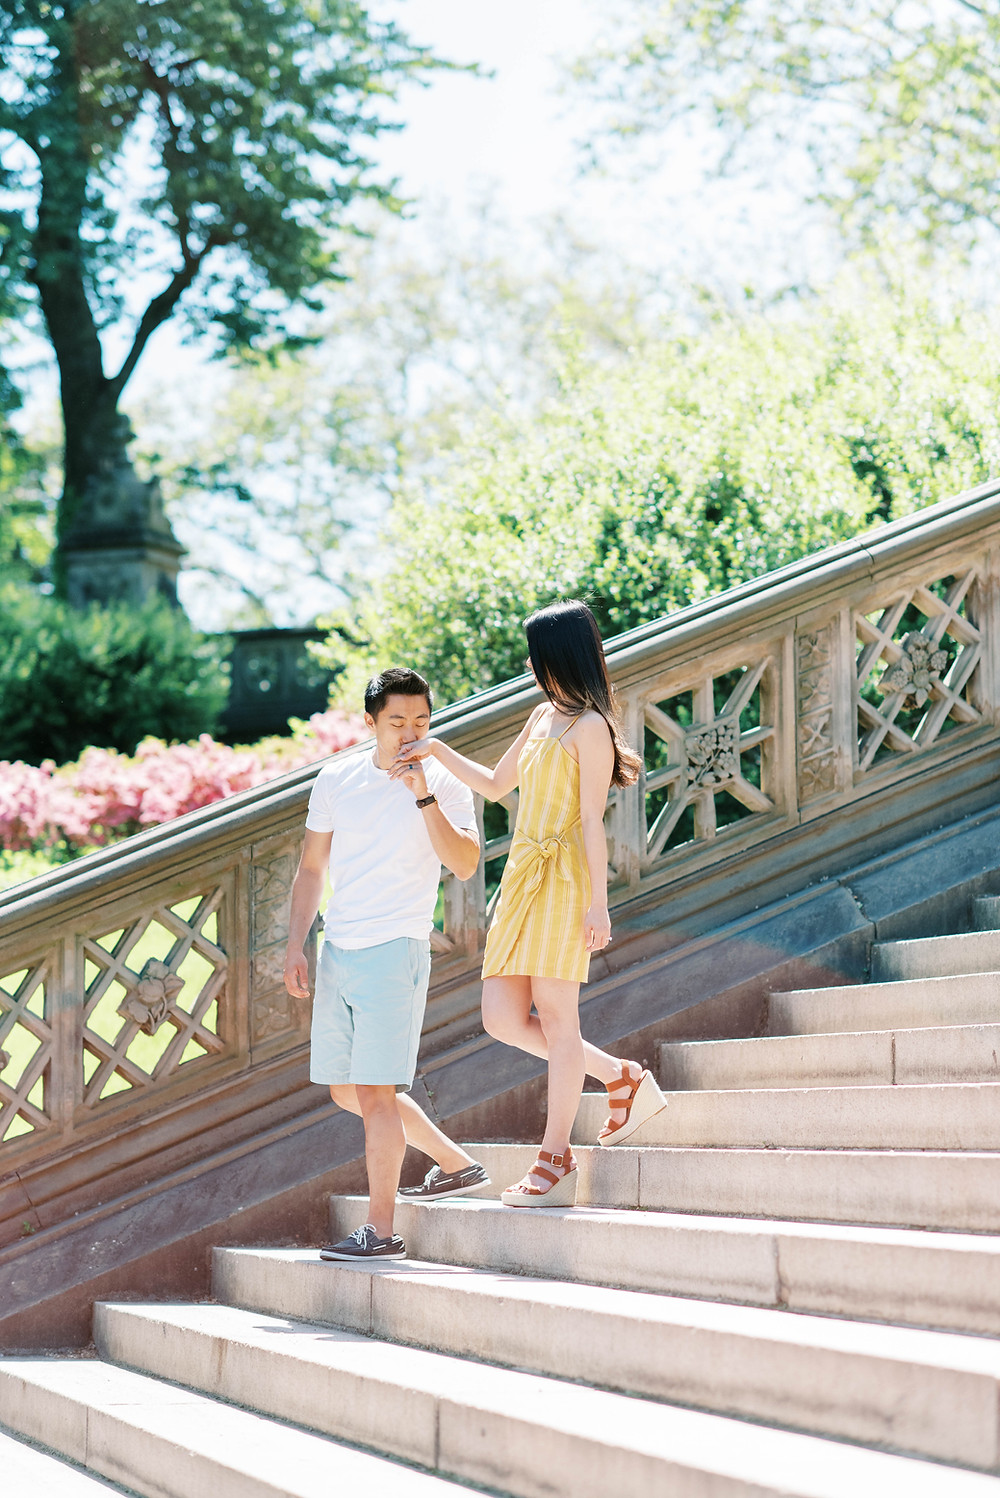 a bride and groom summer engagement session central park new york yellow dress